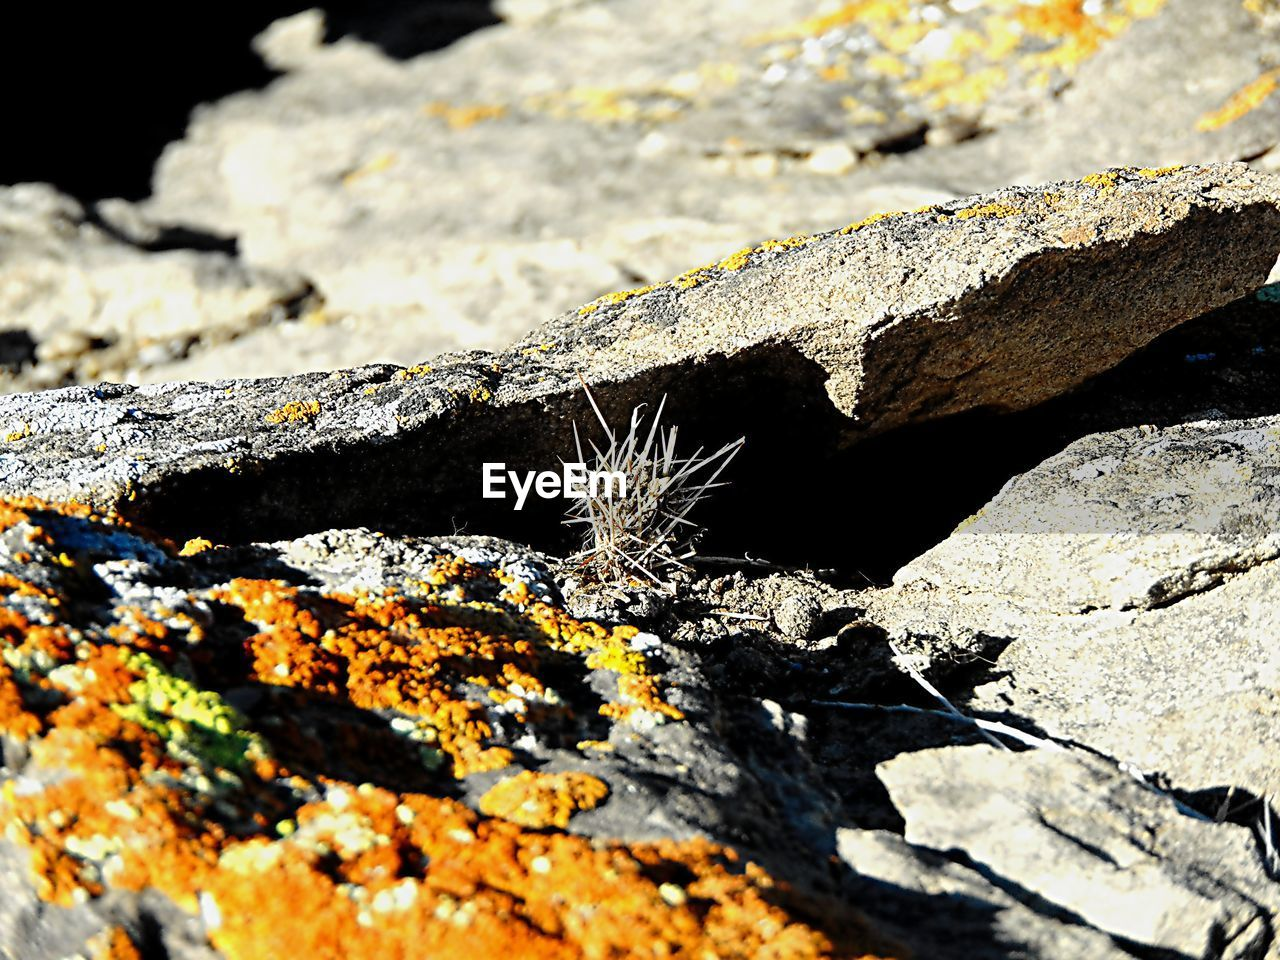 nature, sunlight, day, outdoors, close-up, no people, rock - object, textured, shadow, beauty in nature